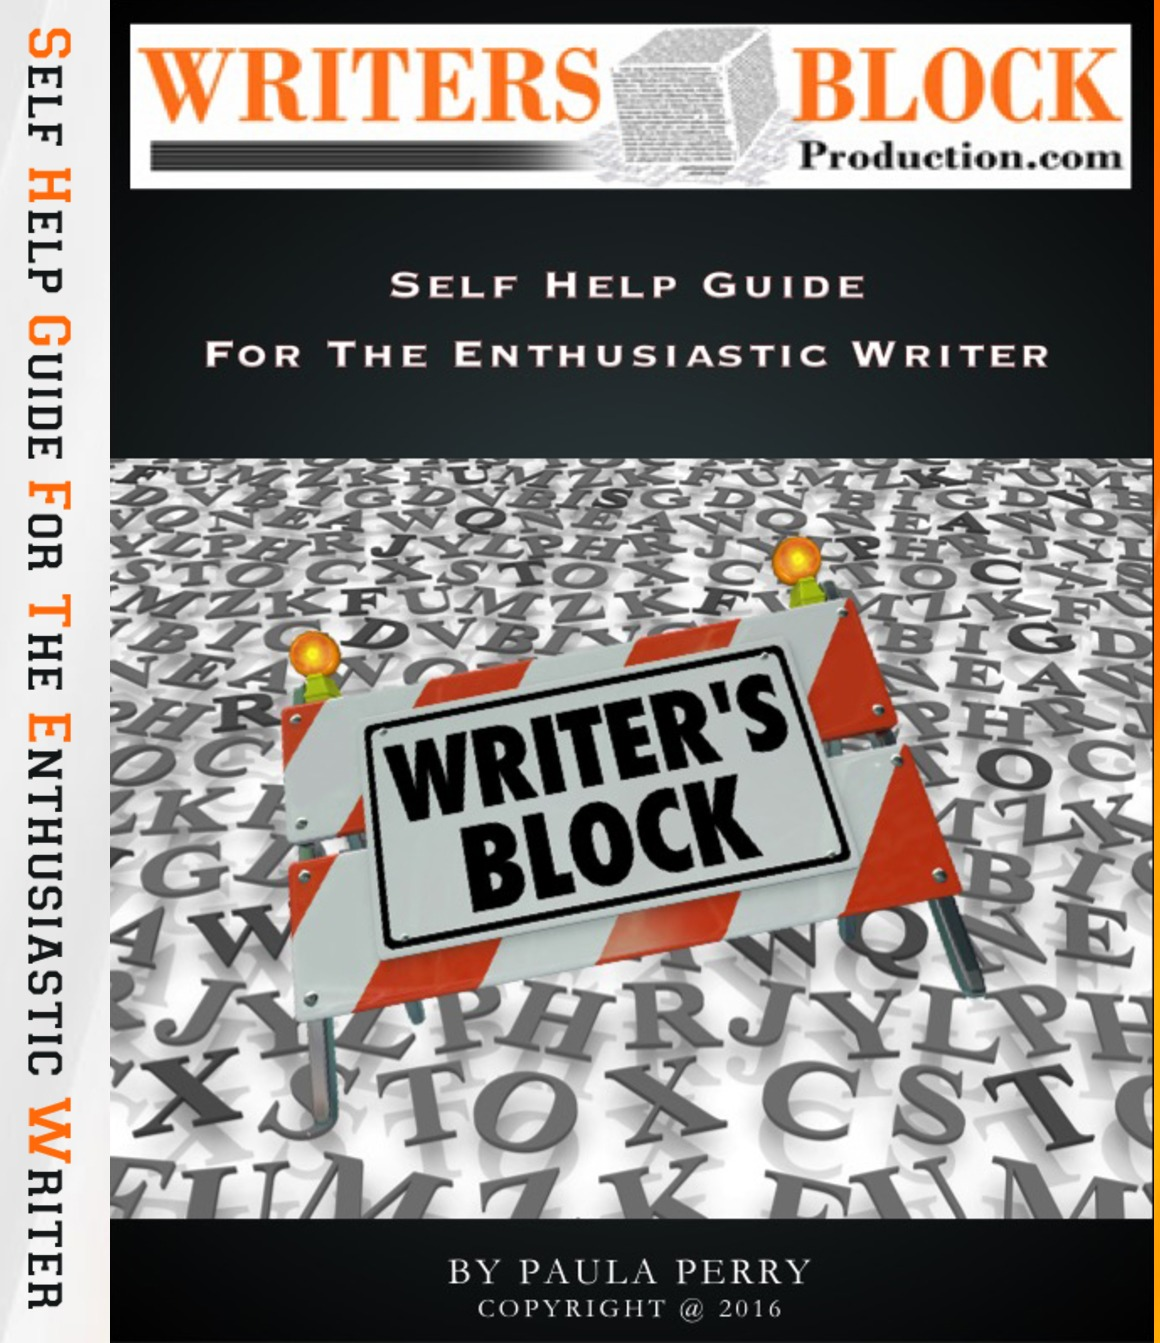 Tips to help writers block